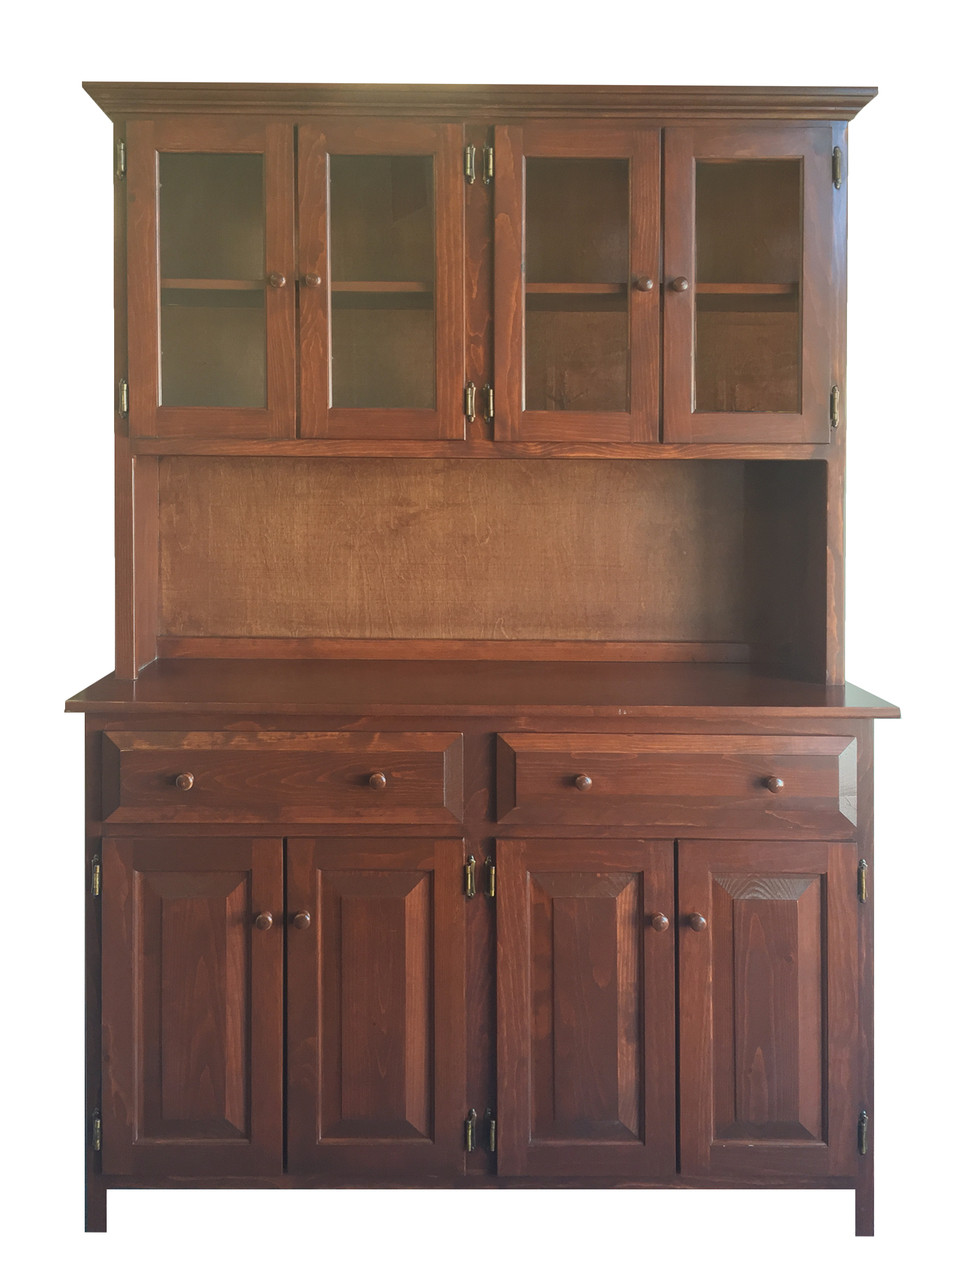 Charming Gothic Cabinet Craft